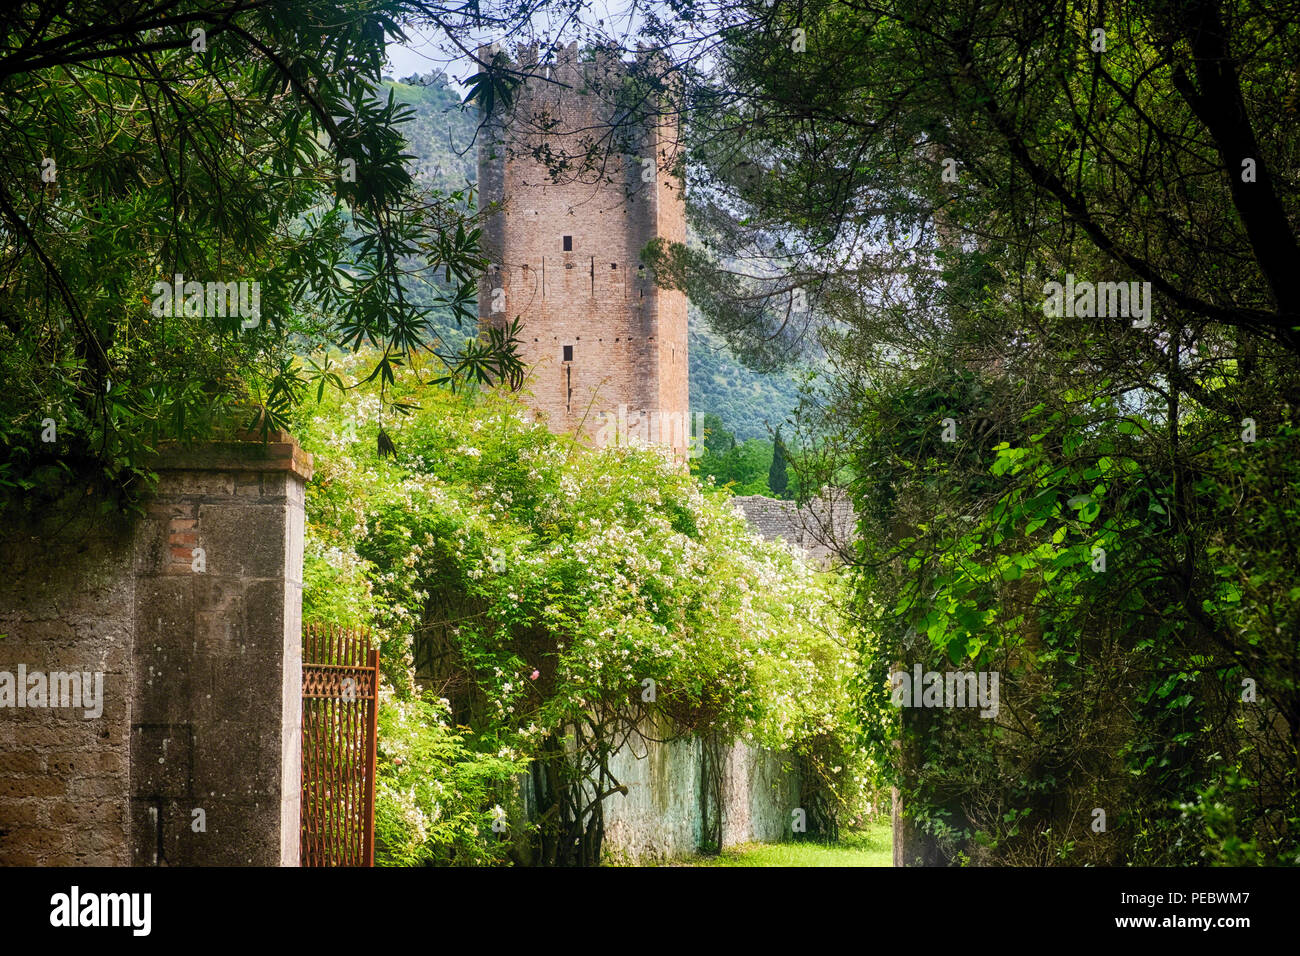 Garden Entrance with a Medieval Tower, Garden of Ninfa, Cisterna di Latina , Italy - Stock Image